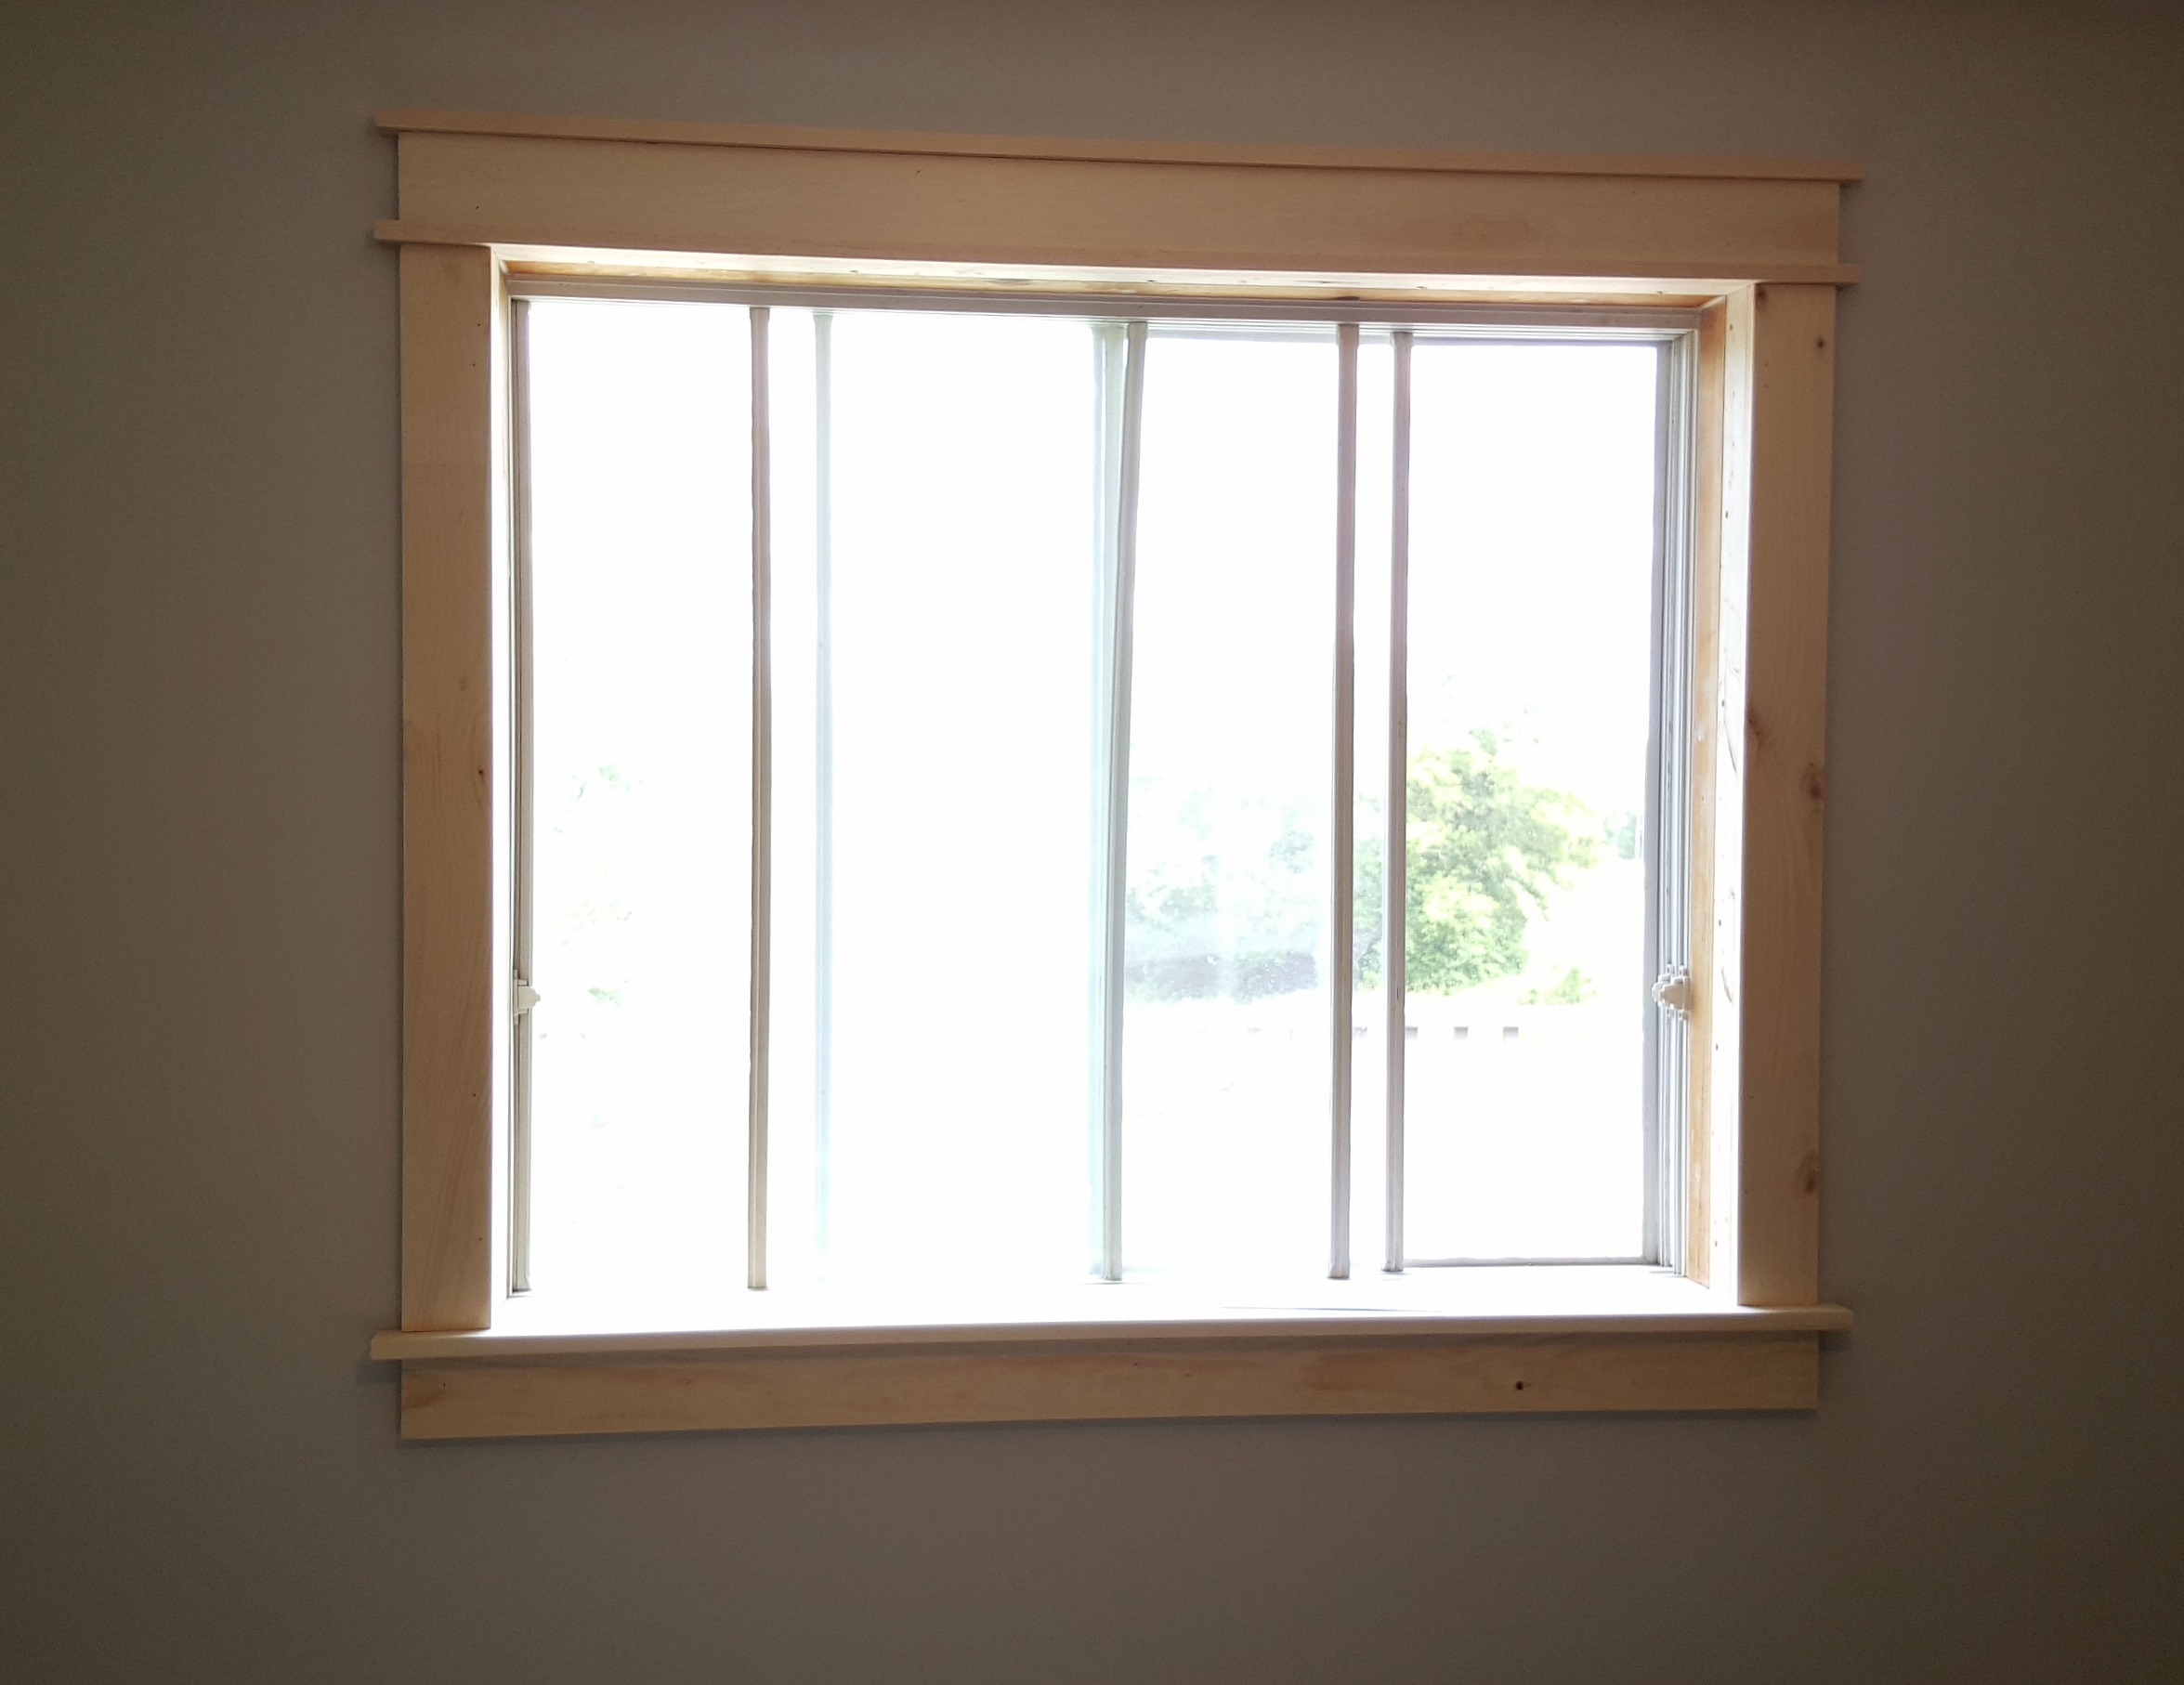 Craftsman window trim styles - Craftsman Style Window Trim